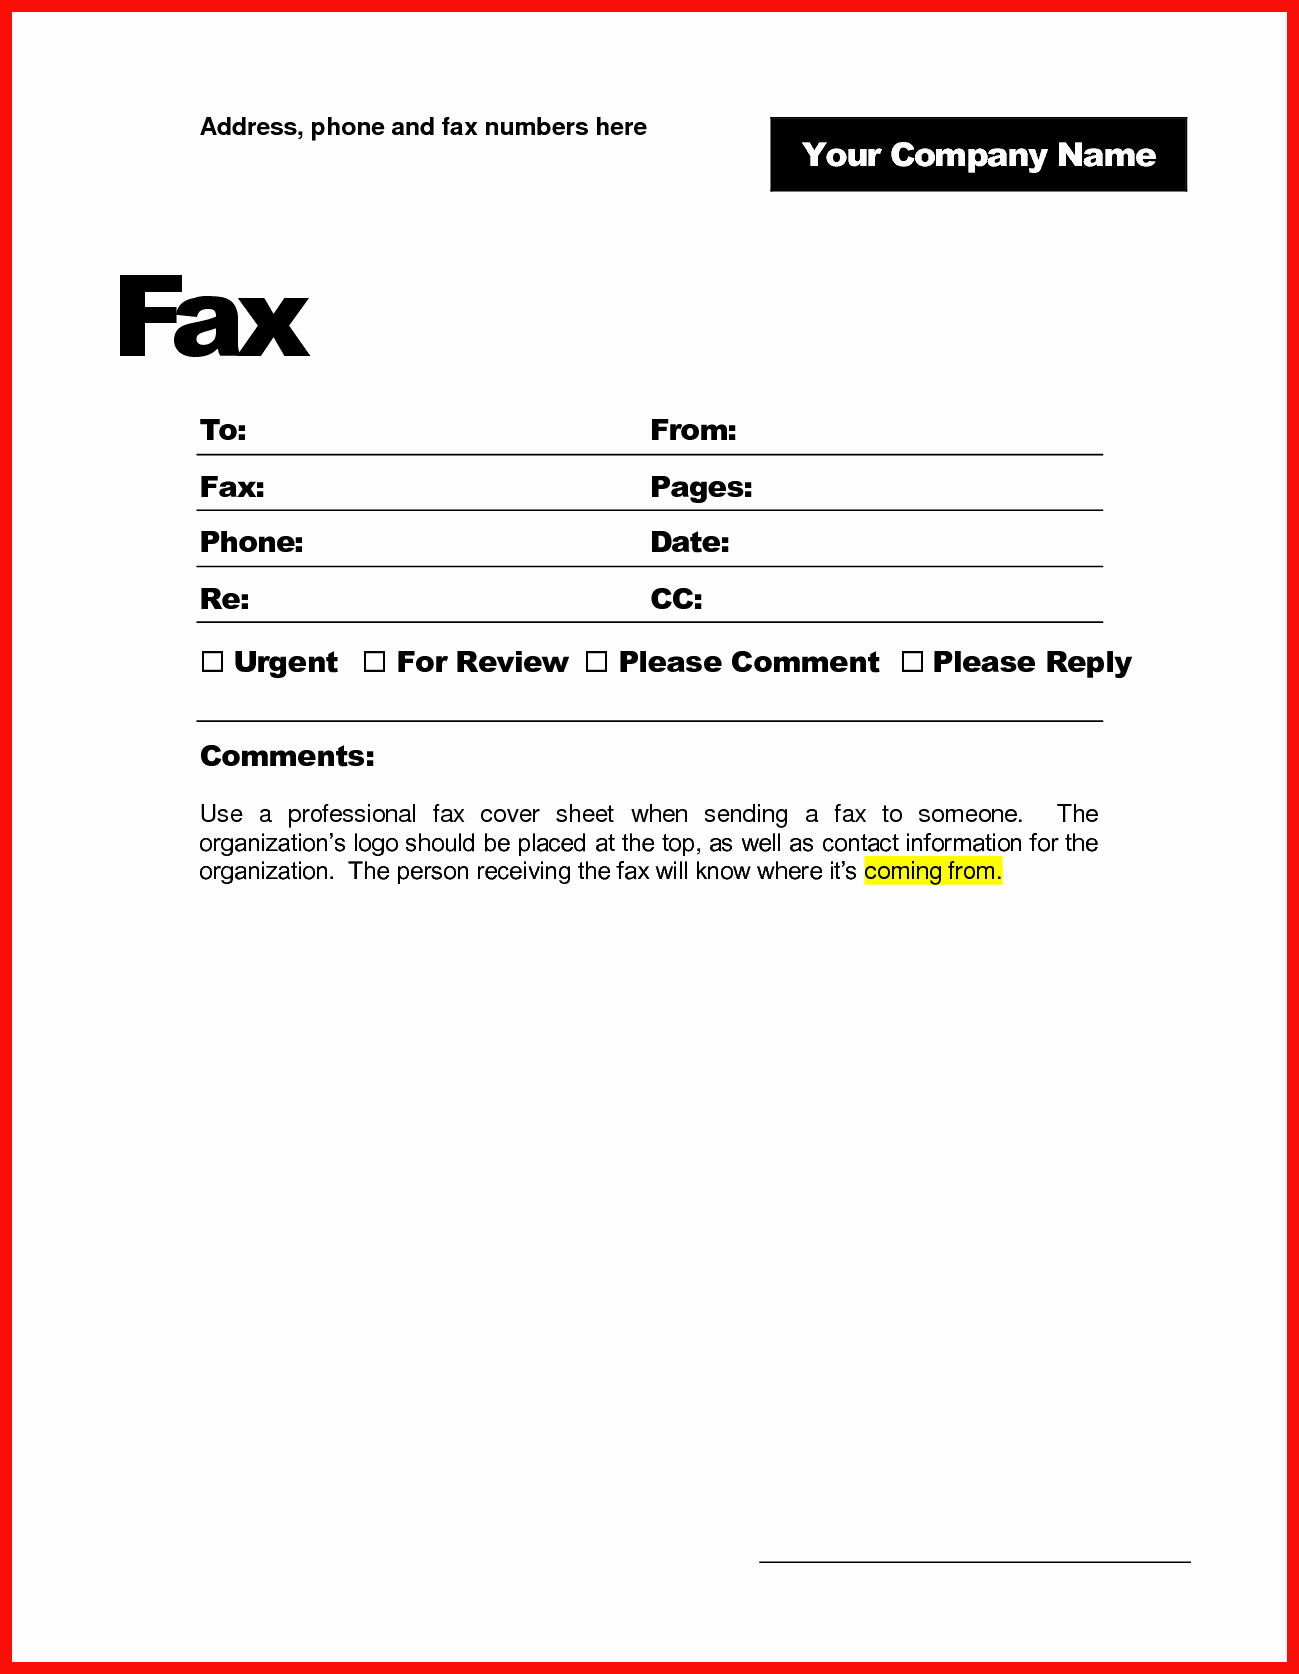 Fillable Fax Cover Sheet Template Luxury Printable Fax Cover Sheet